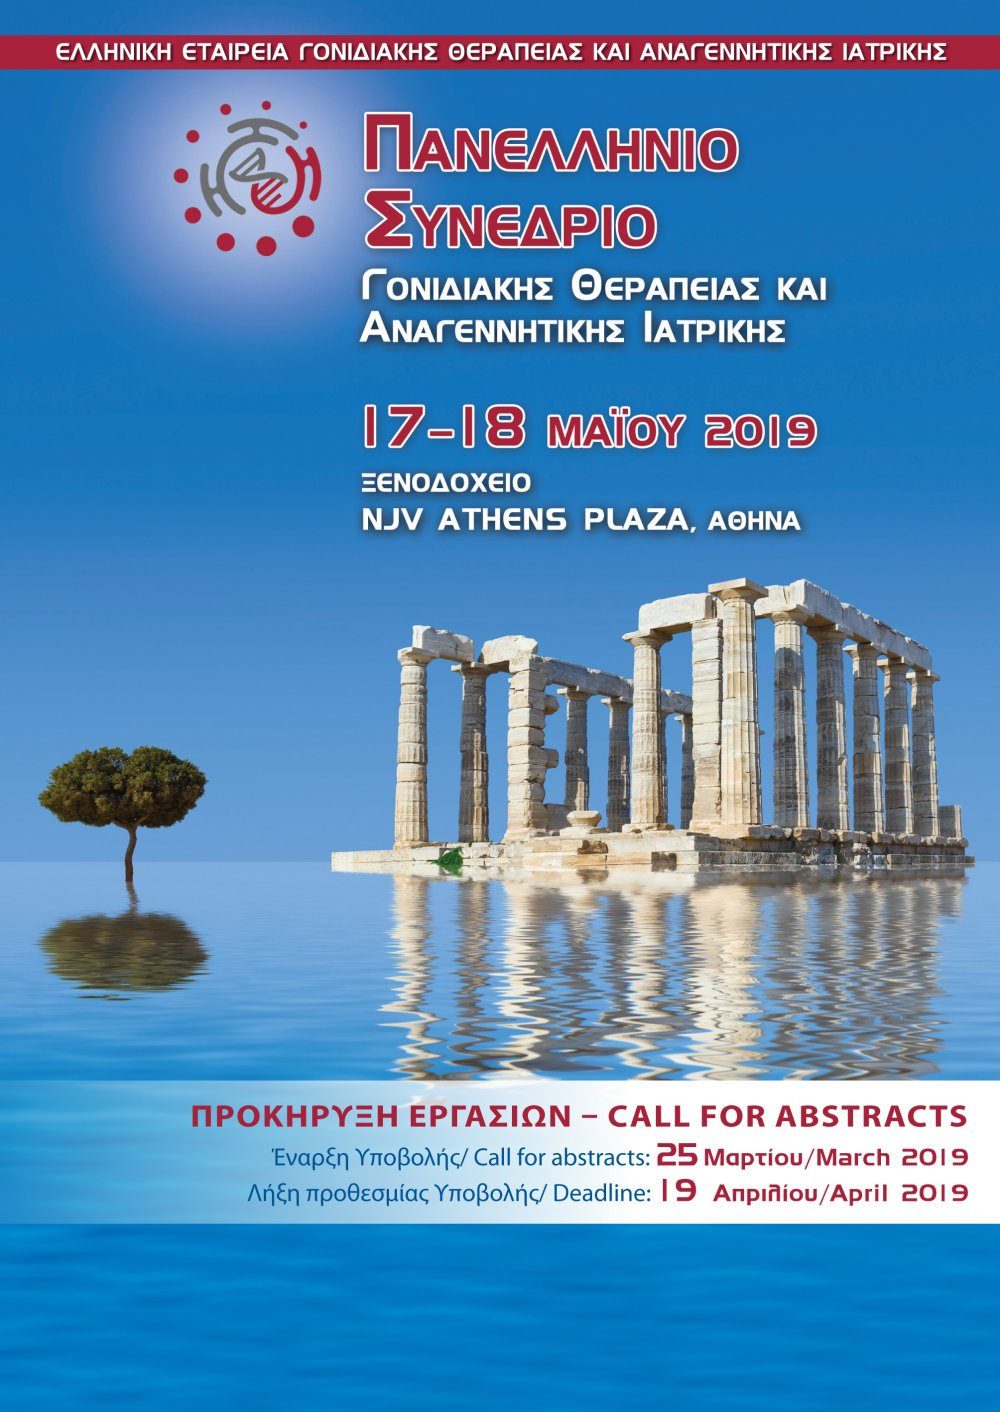 4th Congress of Gene Therapy and Regenerative Medicine - Call for Abstracts is now closed